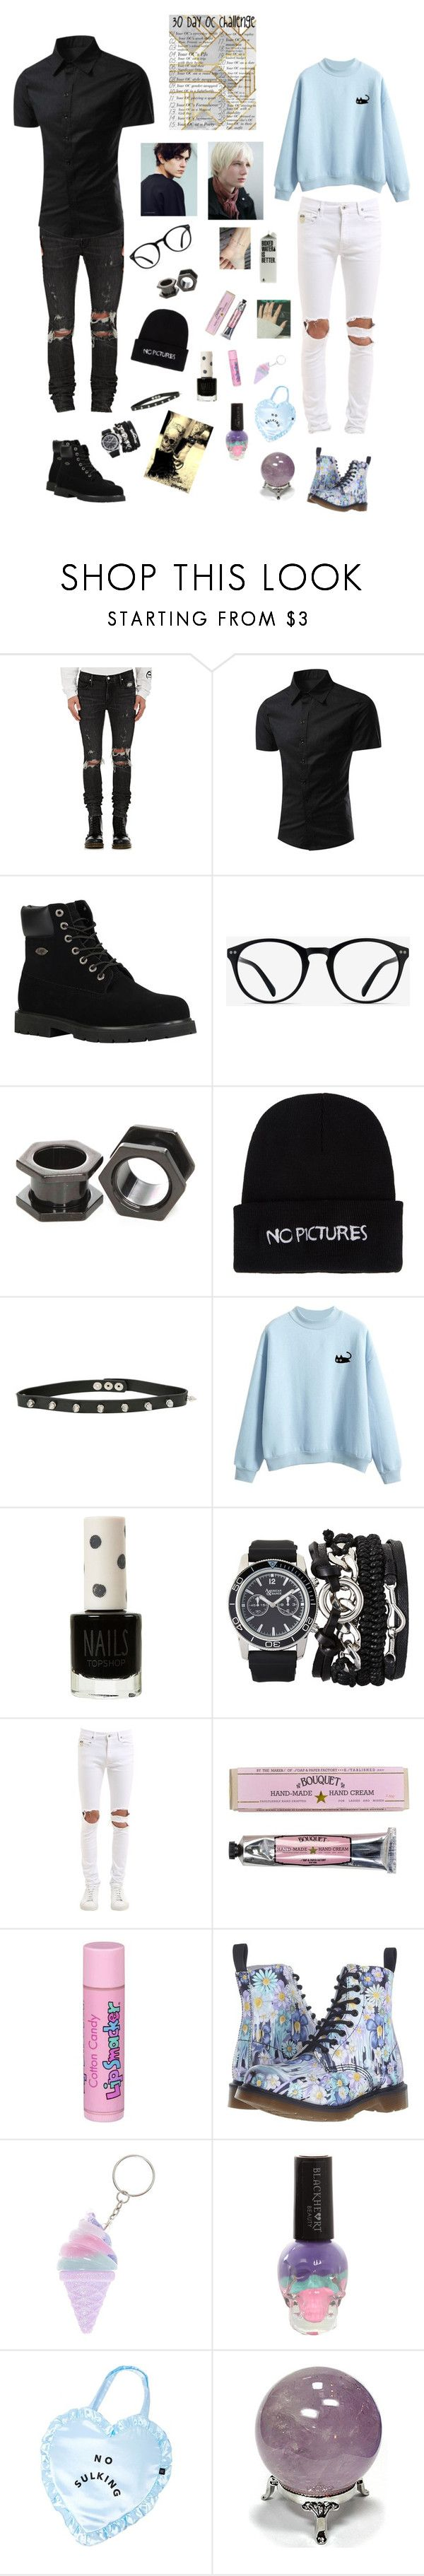 """Aeron and Cyprin"" by kenzeemck ❤ liked on Polyvore featuring RtA, Lugz, EyeBuyDirect.com, Nasaseasons, Hot Topic, Topshop, A.X.N.Y., April 77, Soap & Paper Factory and Bonne Bell"